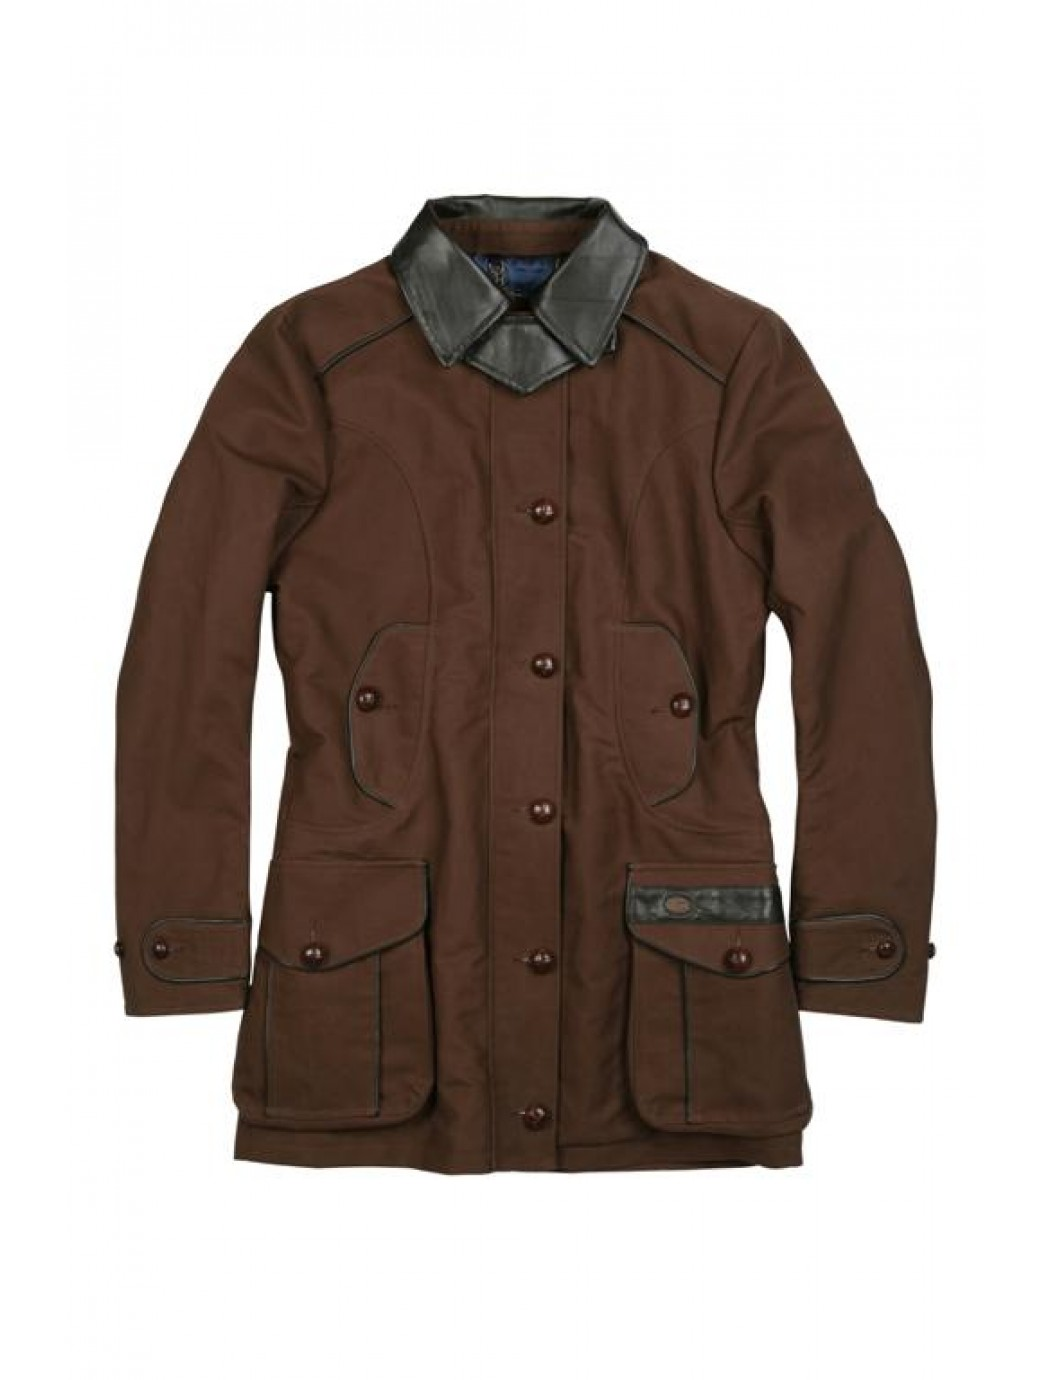 sutton-jacket-walnut-dubarry-1